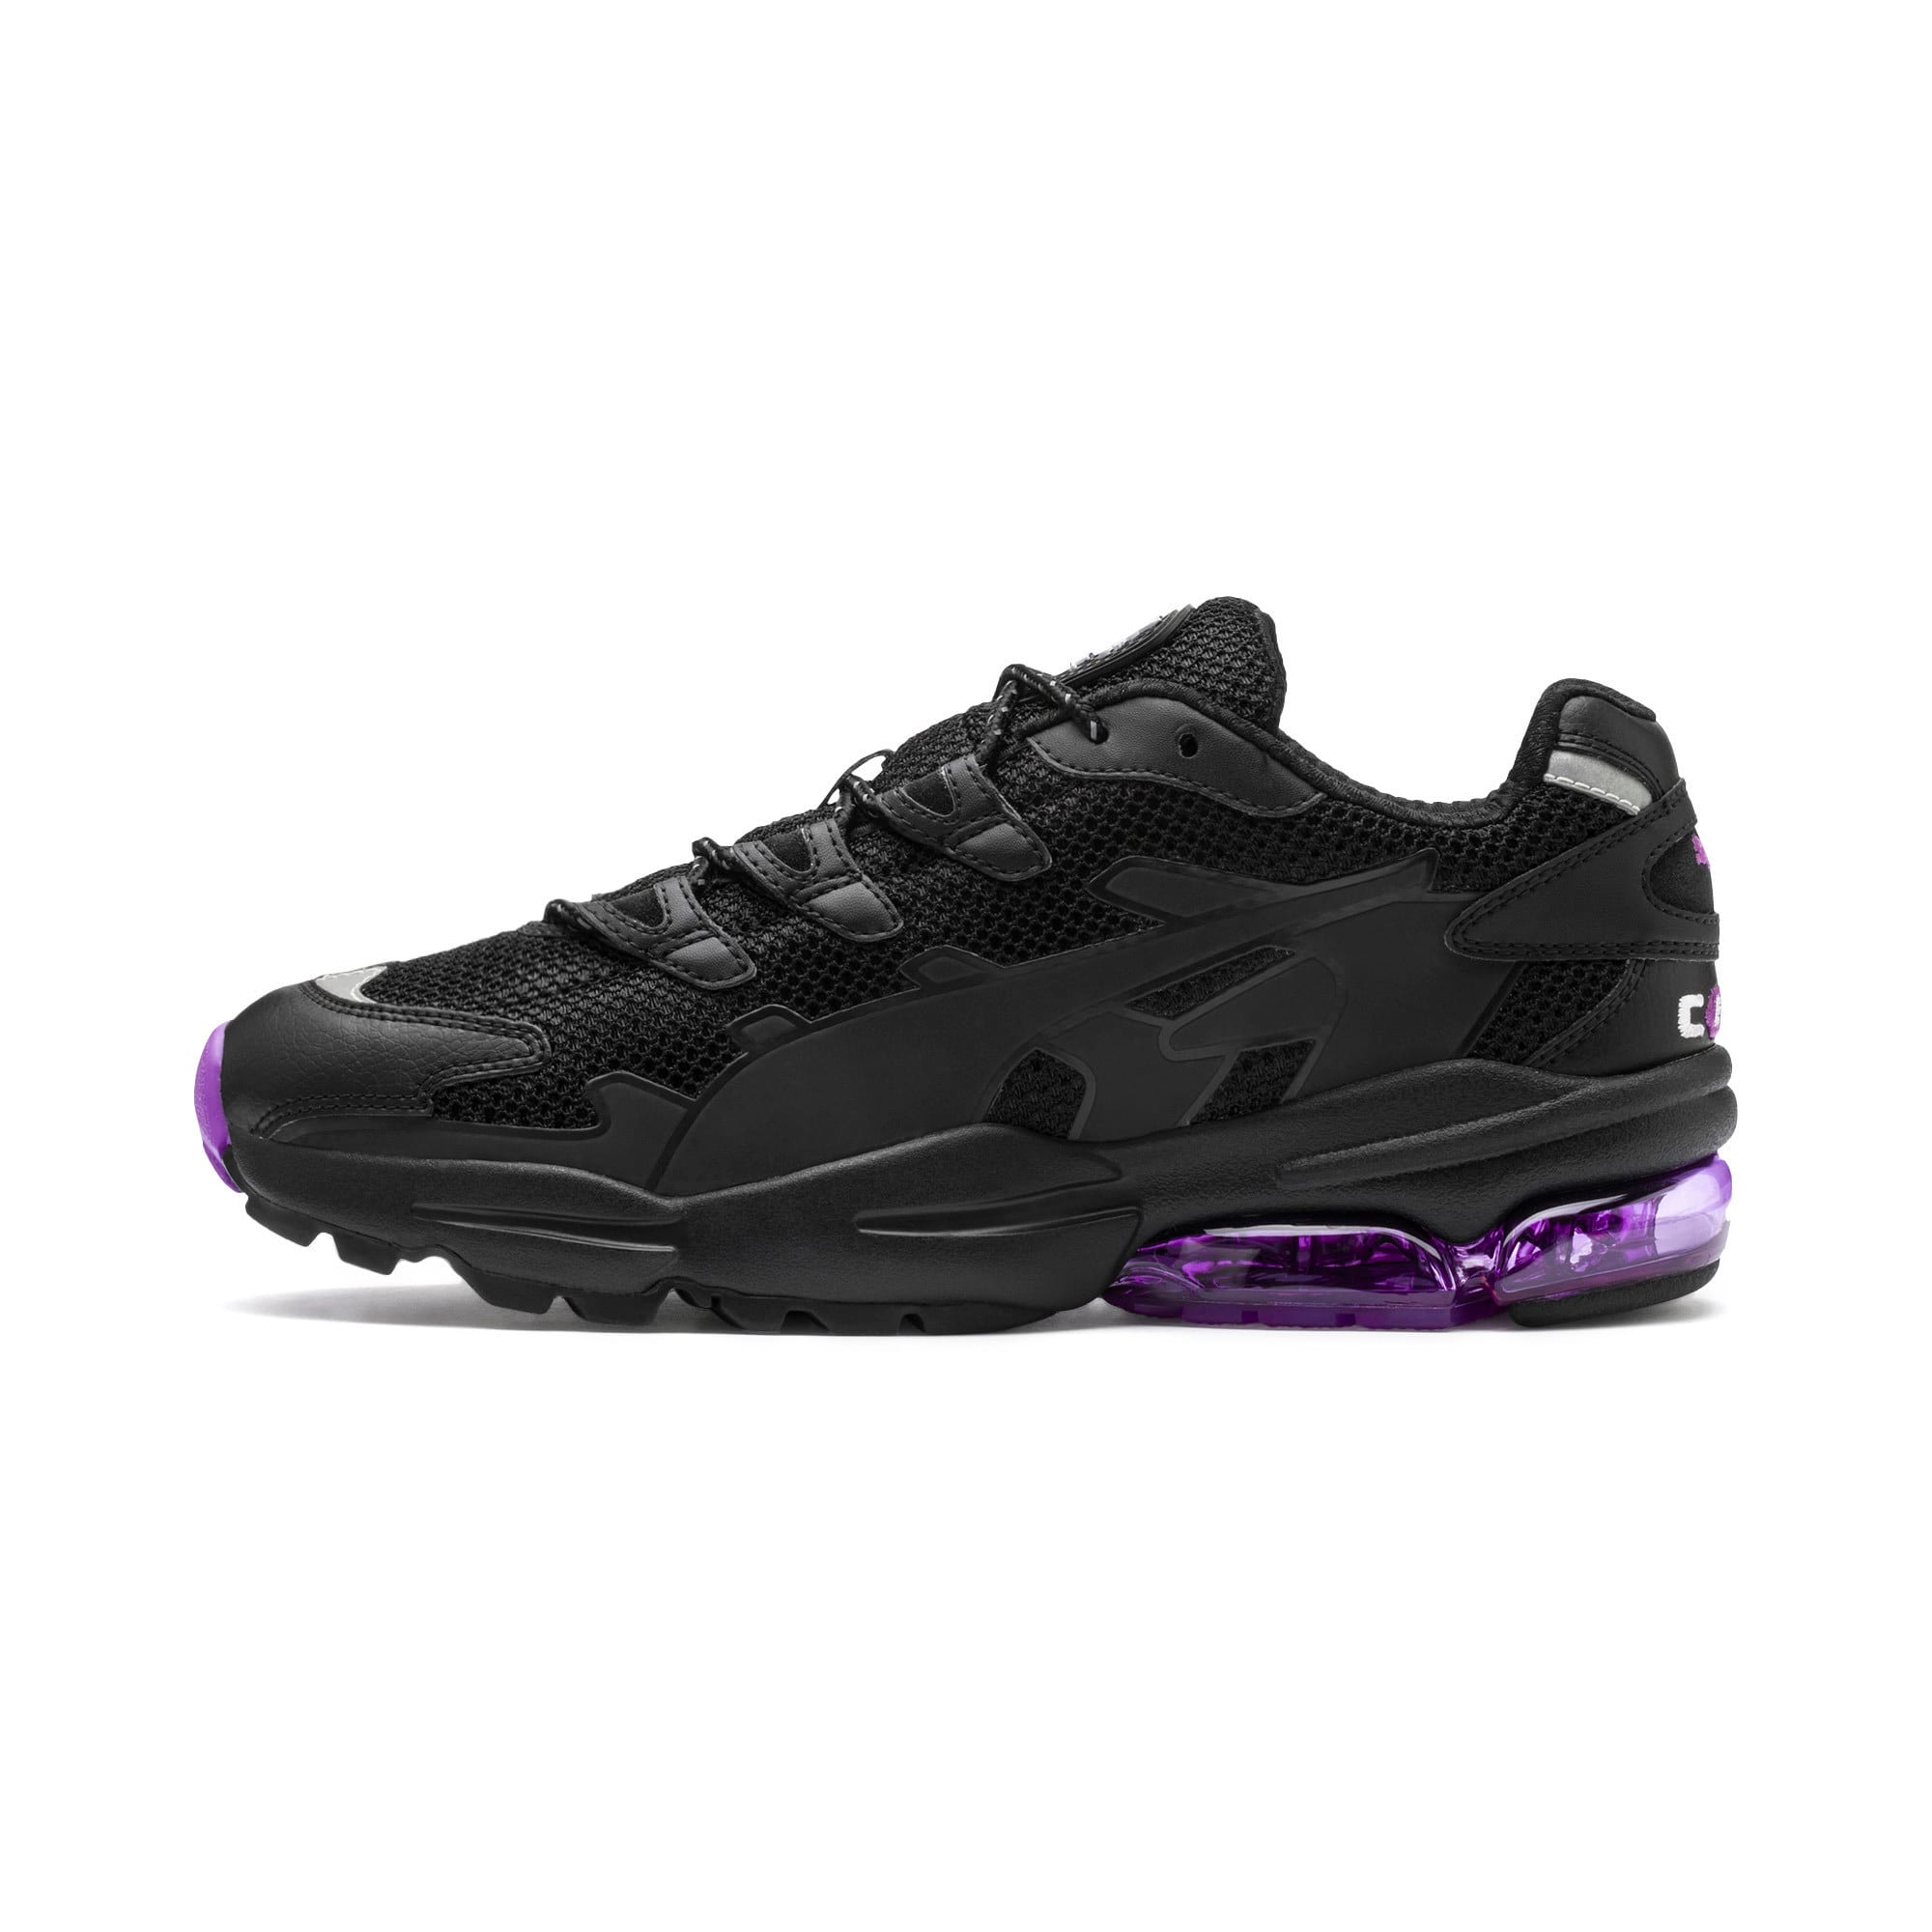 Thumbnail 1 of CELL Alien Kotto sportschoenen, Puma Black-Puma Black, medium